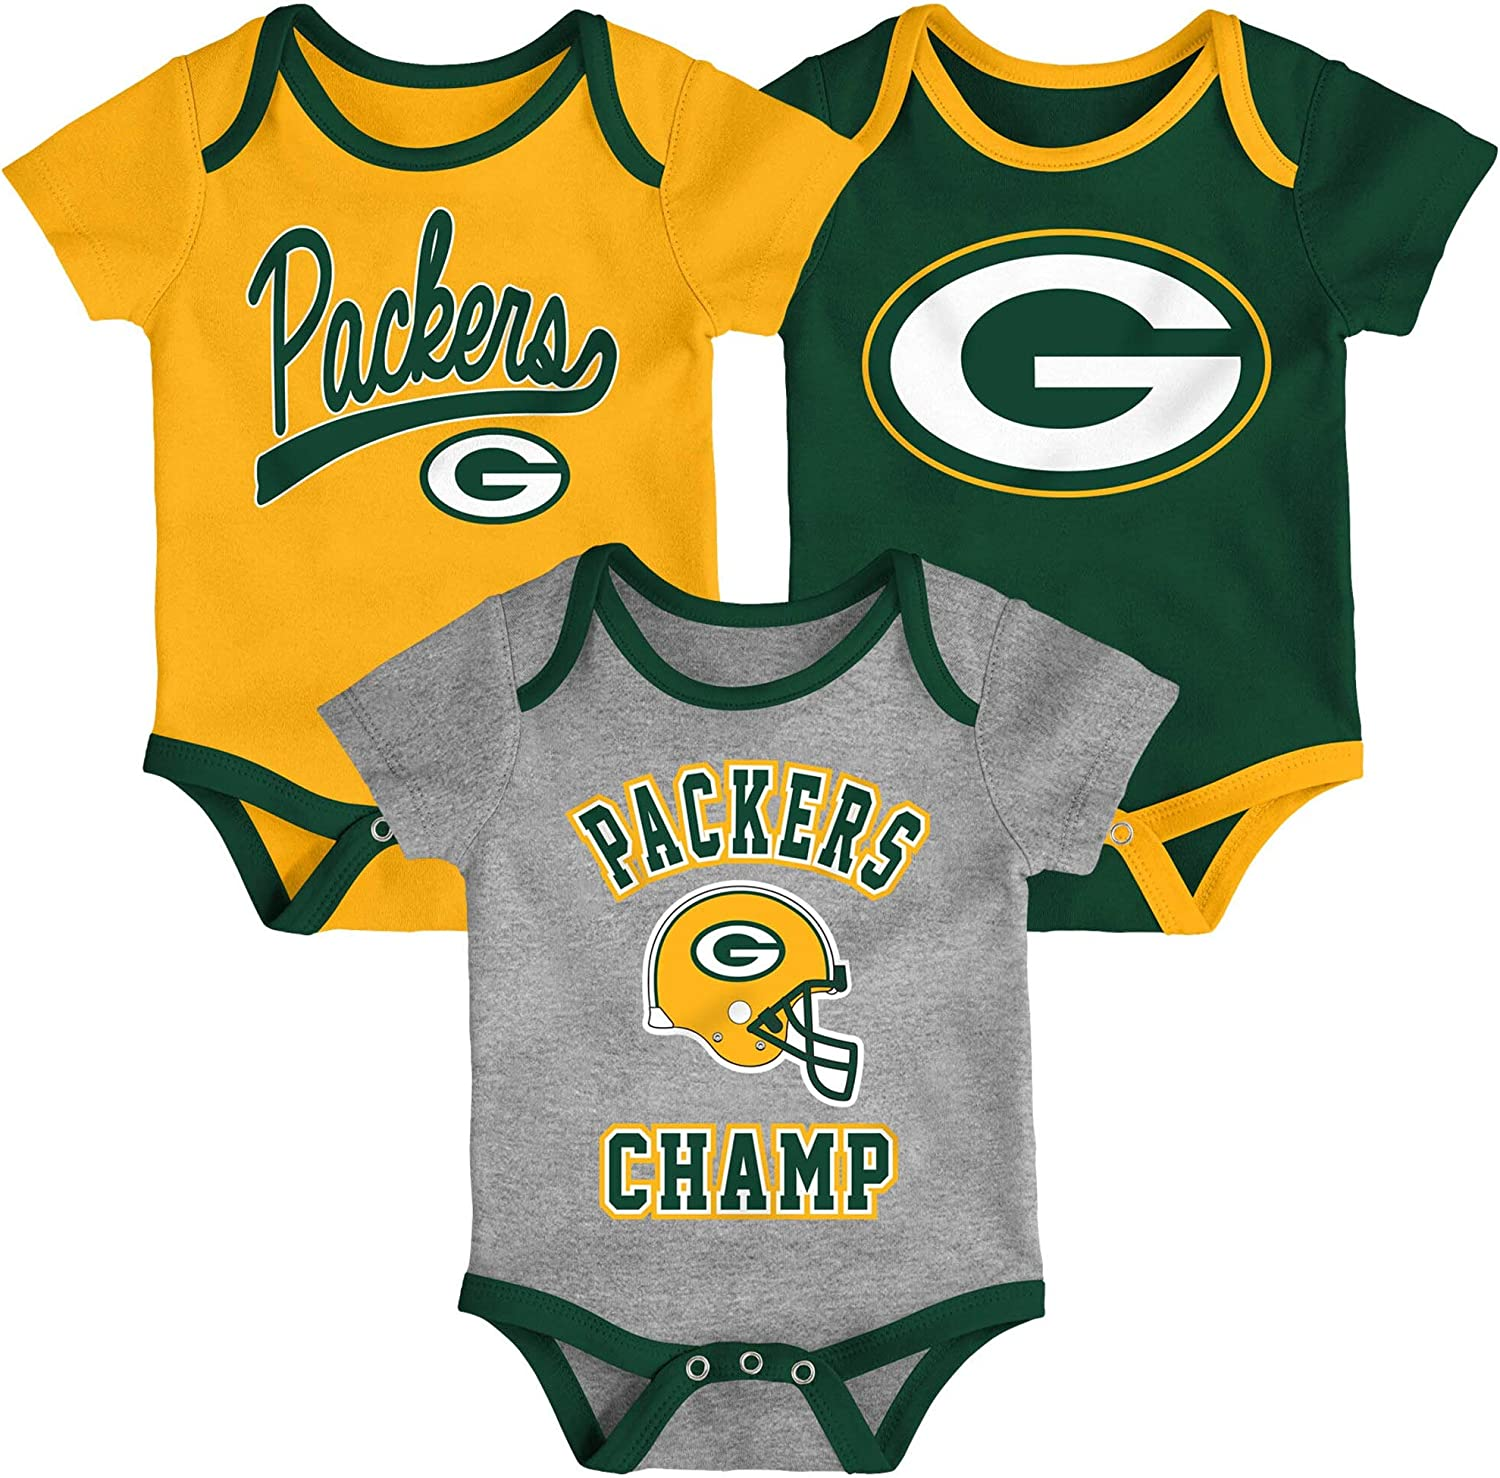 Outerstuff Infant Green Bay Packers Gold//Green//Heathered Gray Champ 3-Piece Bodysuit Set